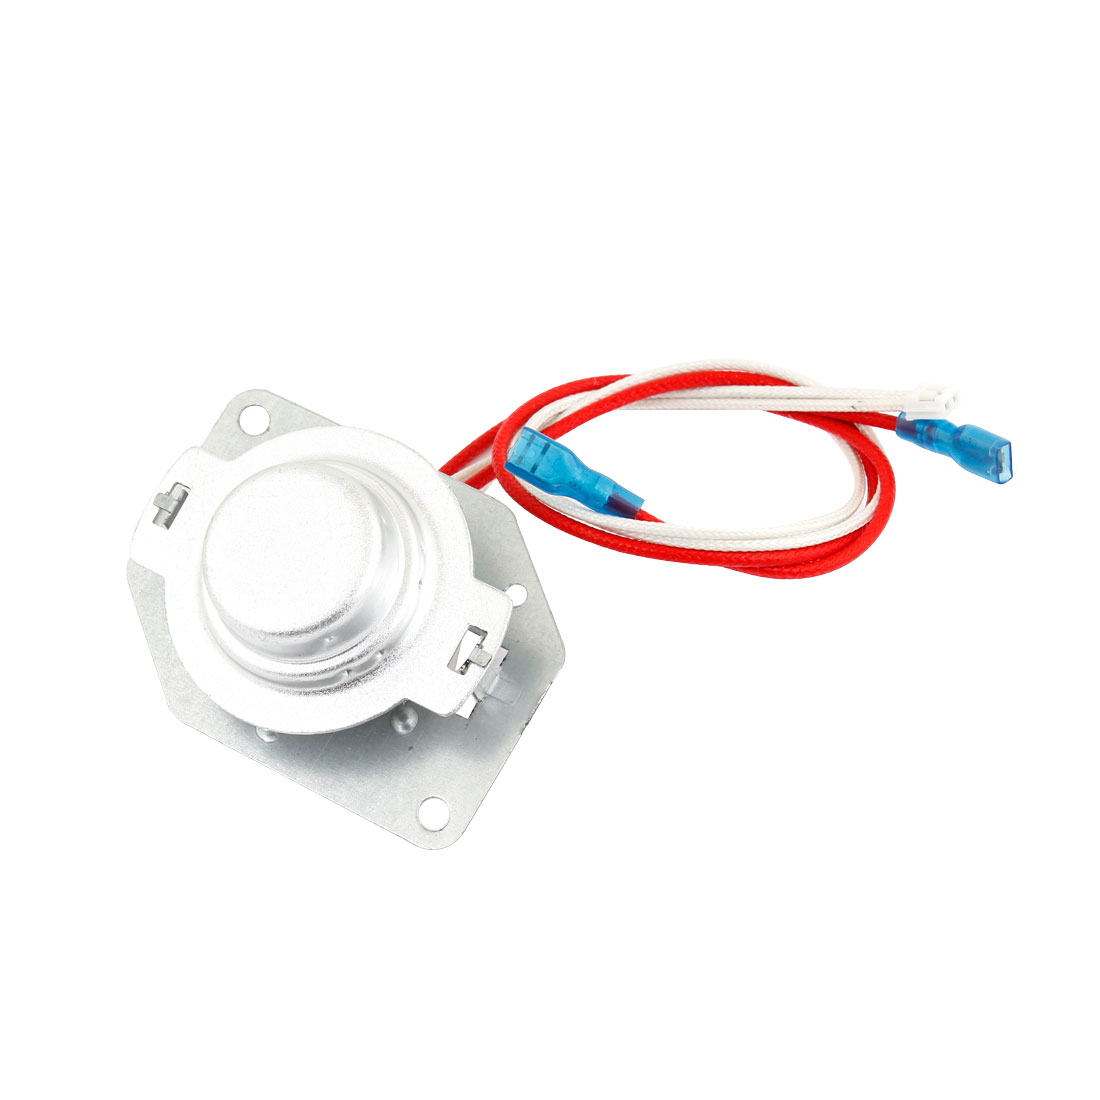 Home Electric Rice Cooker Magnetic 4 Wires Center Temperature Controller Sensor